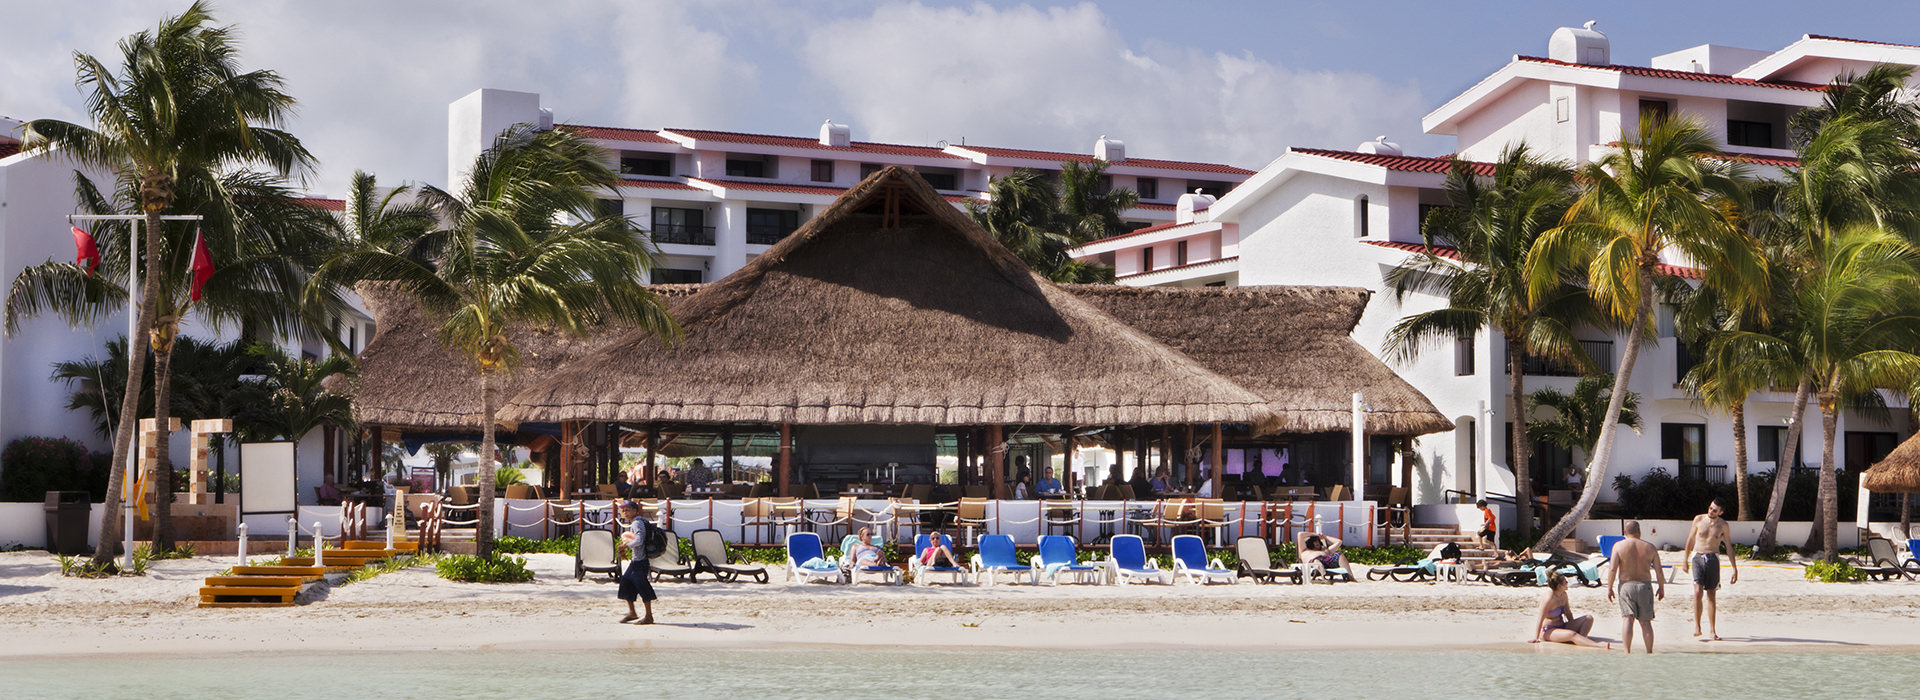 beachfront restaurant in Cancun resort